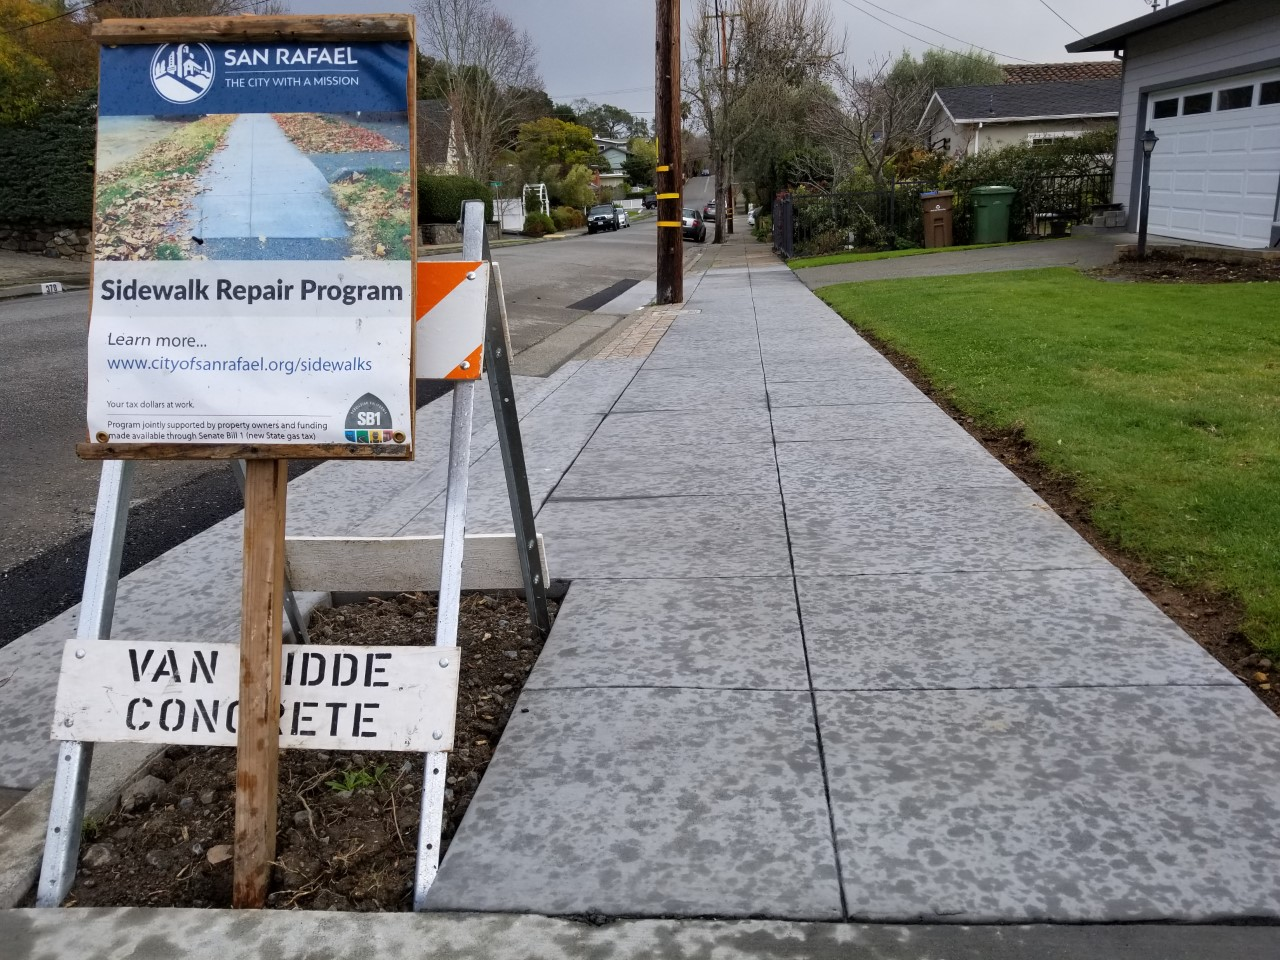 Sidewalk repair program sign along newly repaired sidewalks